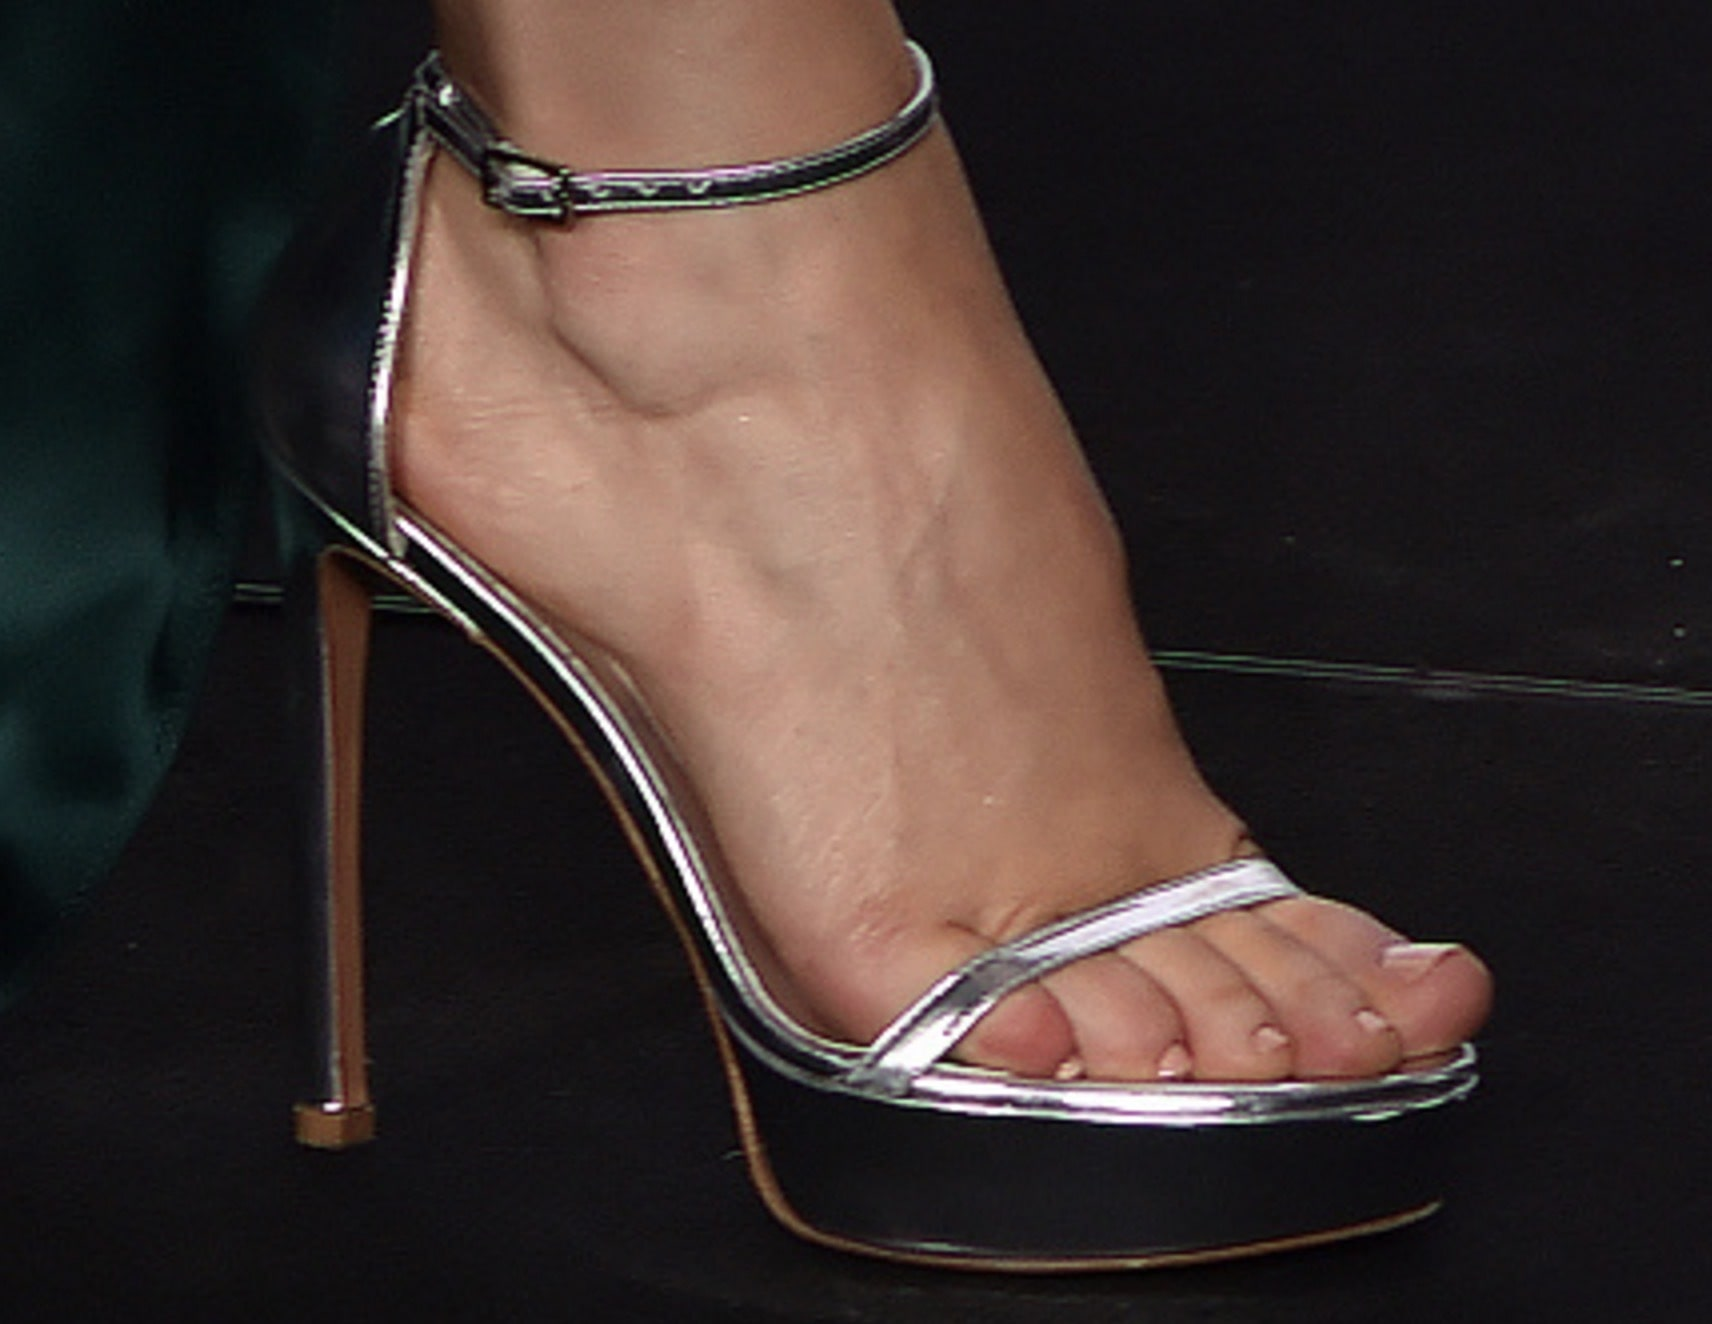 Rachel McAdams Beautiful Feet Image